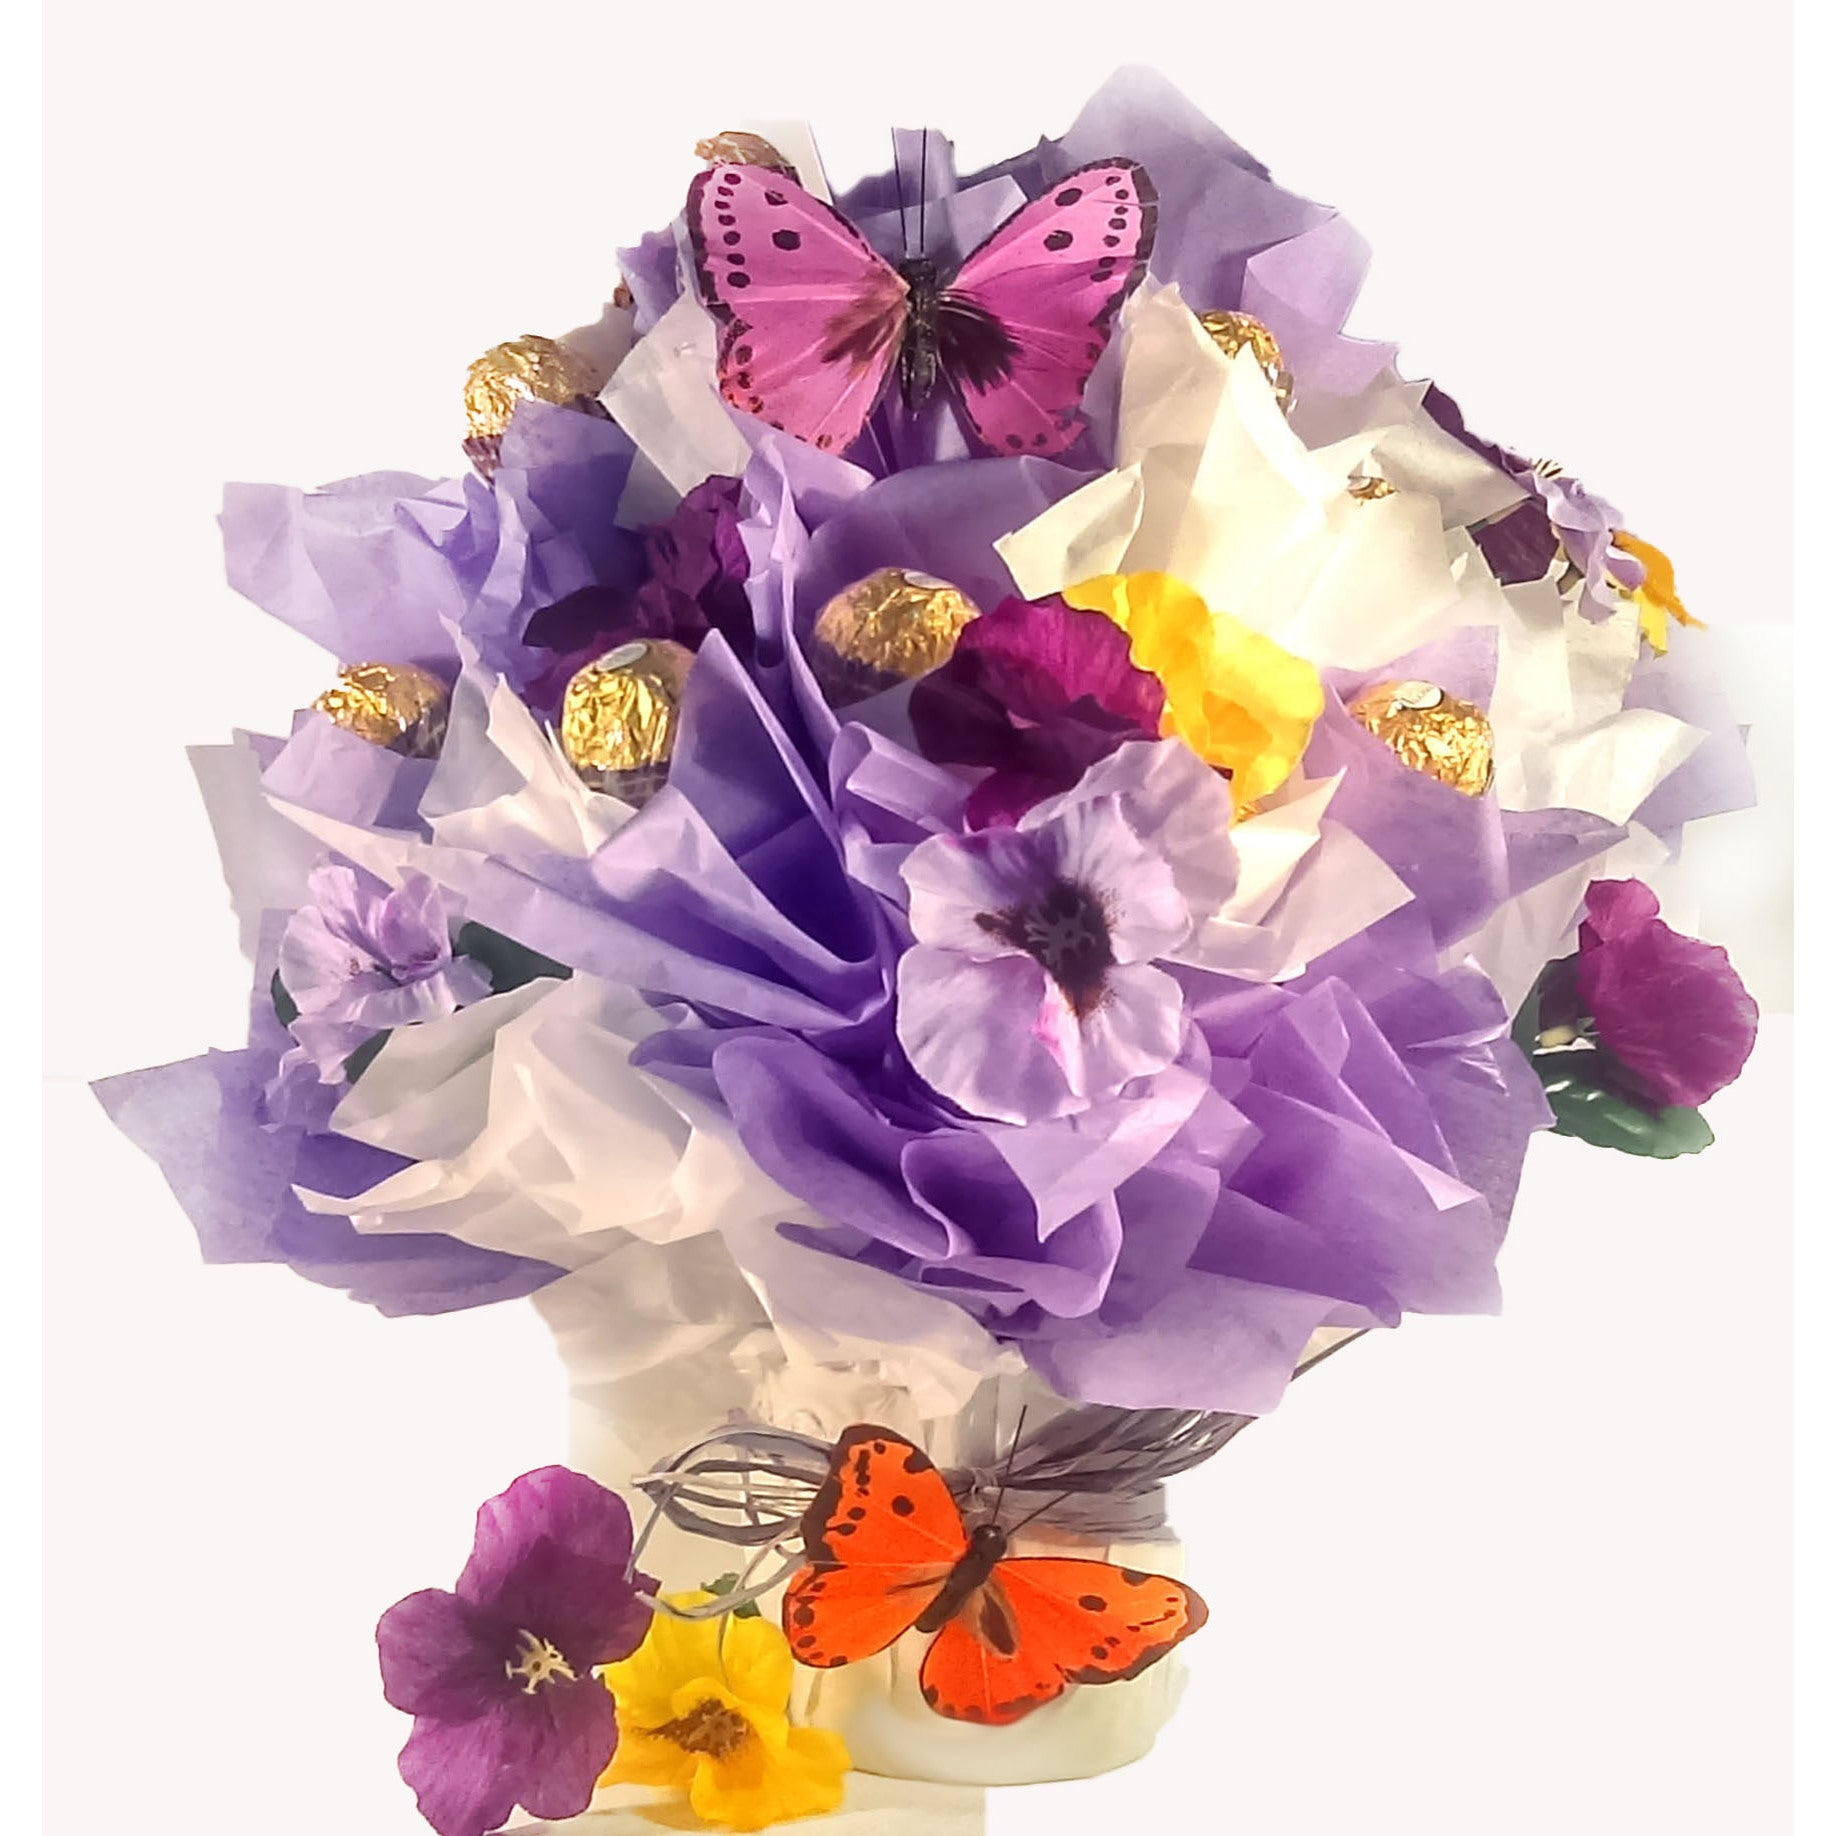 Shop flowers and butterfly rocher chocolate candy bouquet free shop flowers and butterfly rocher chocolate candy bouquet free shipping on orders over 45 overstock 19887758 izmirmasajfo